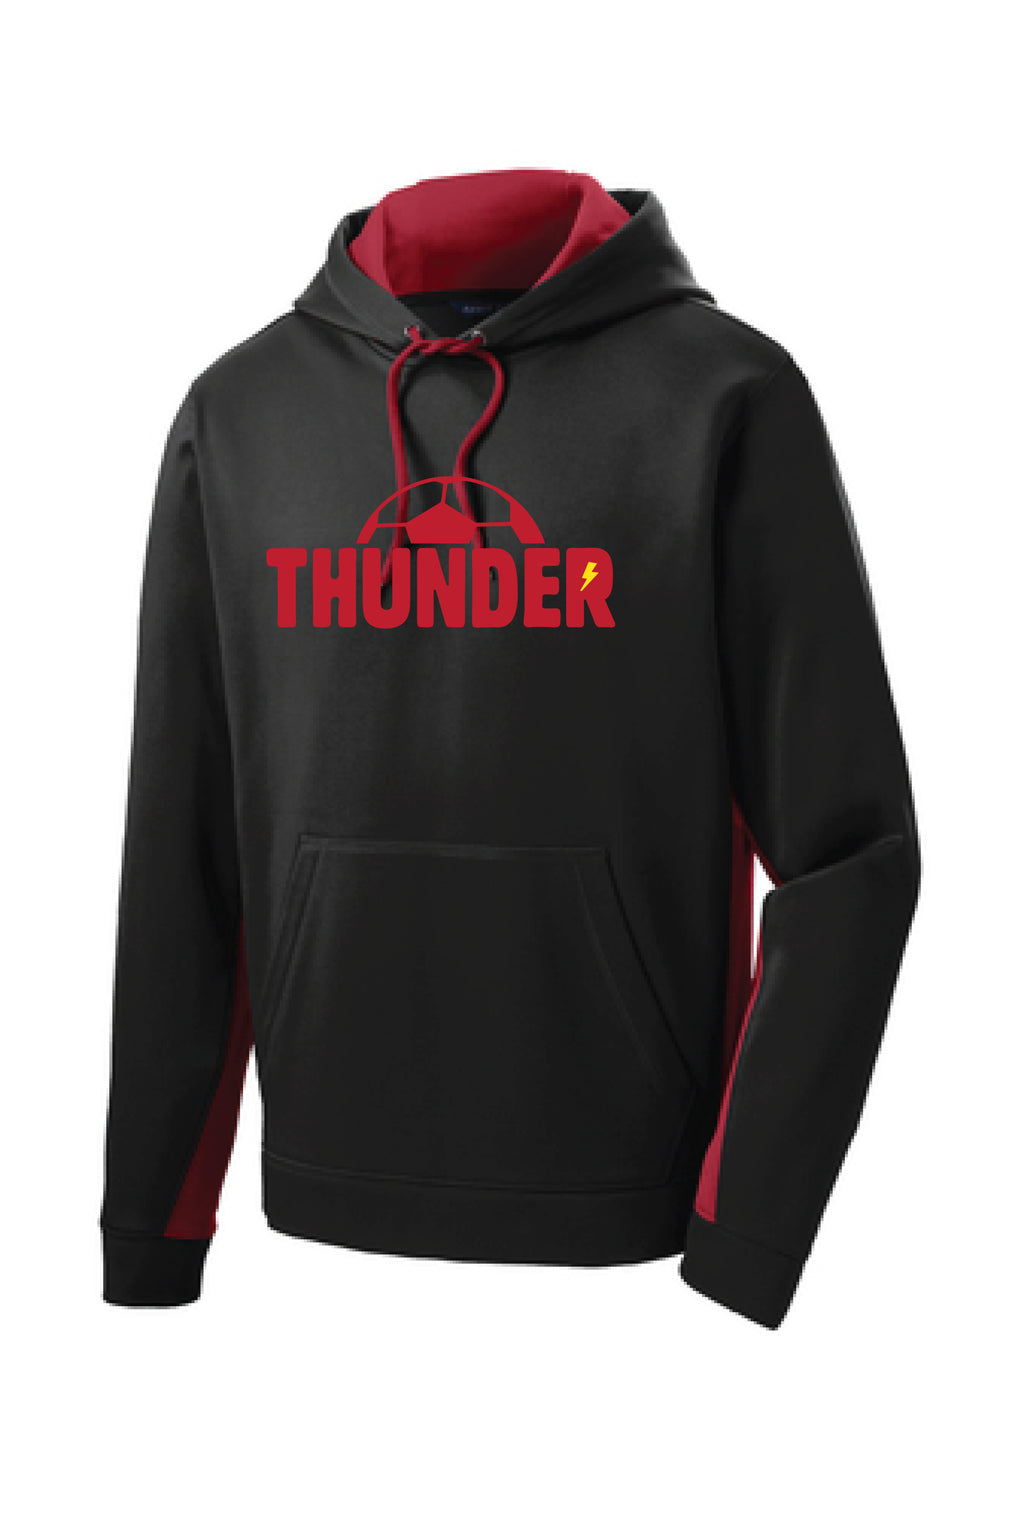 Boys Thunder Wicking Hoodie - Adult Unisex and Youth